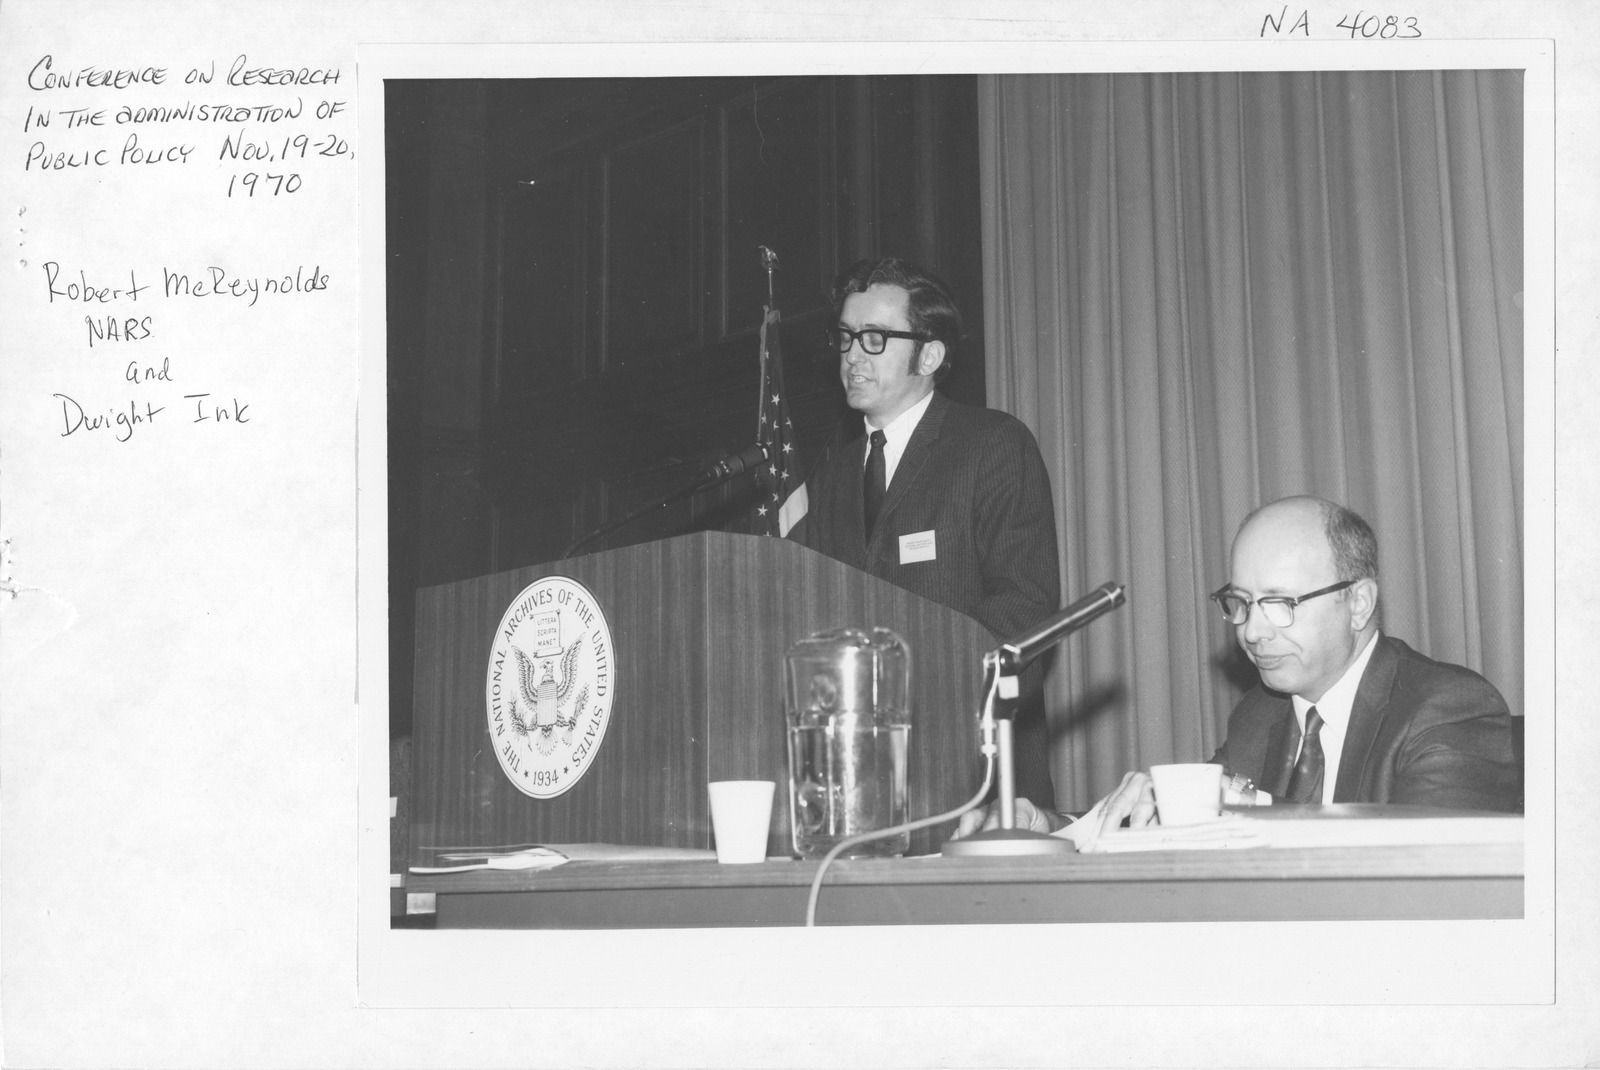 Photograph of Conference on Research in the Administration of Public Policy